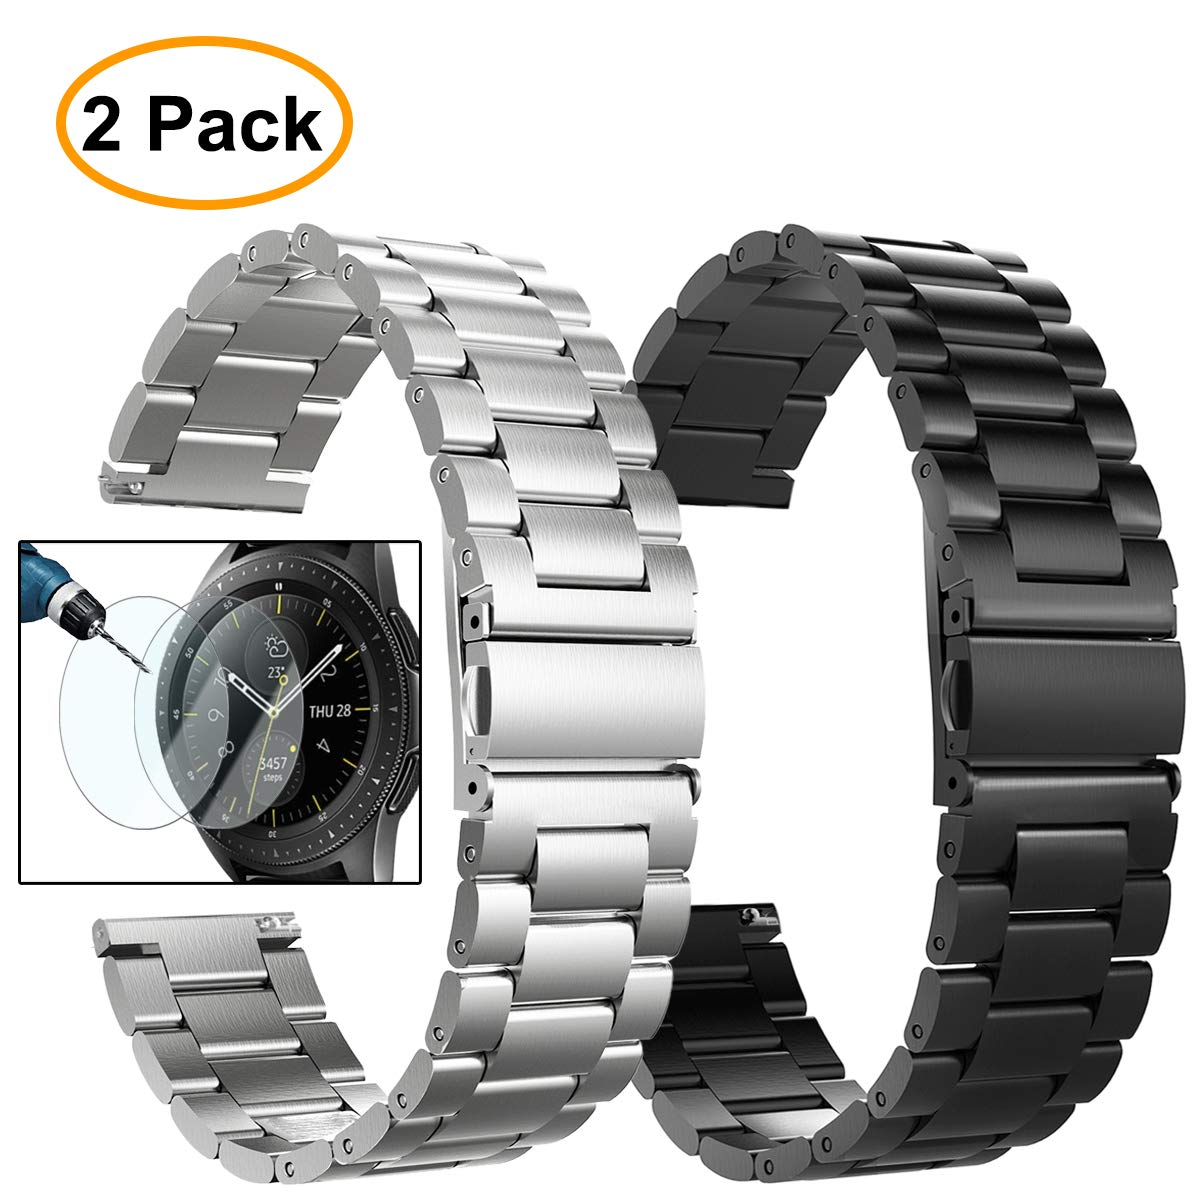 Valkit Compatible Galaxy Watch (46mm) Bands, 2 Pack 22mm Stainless Steel Band, Solid Metal Wrist Band Strap Business Bracelet + Screen Protector Replacement for Samsung Galaxy Watch 46mm SM-R800 by valkit